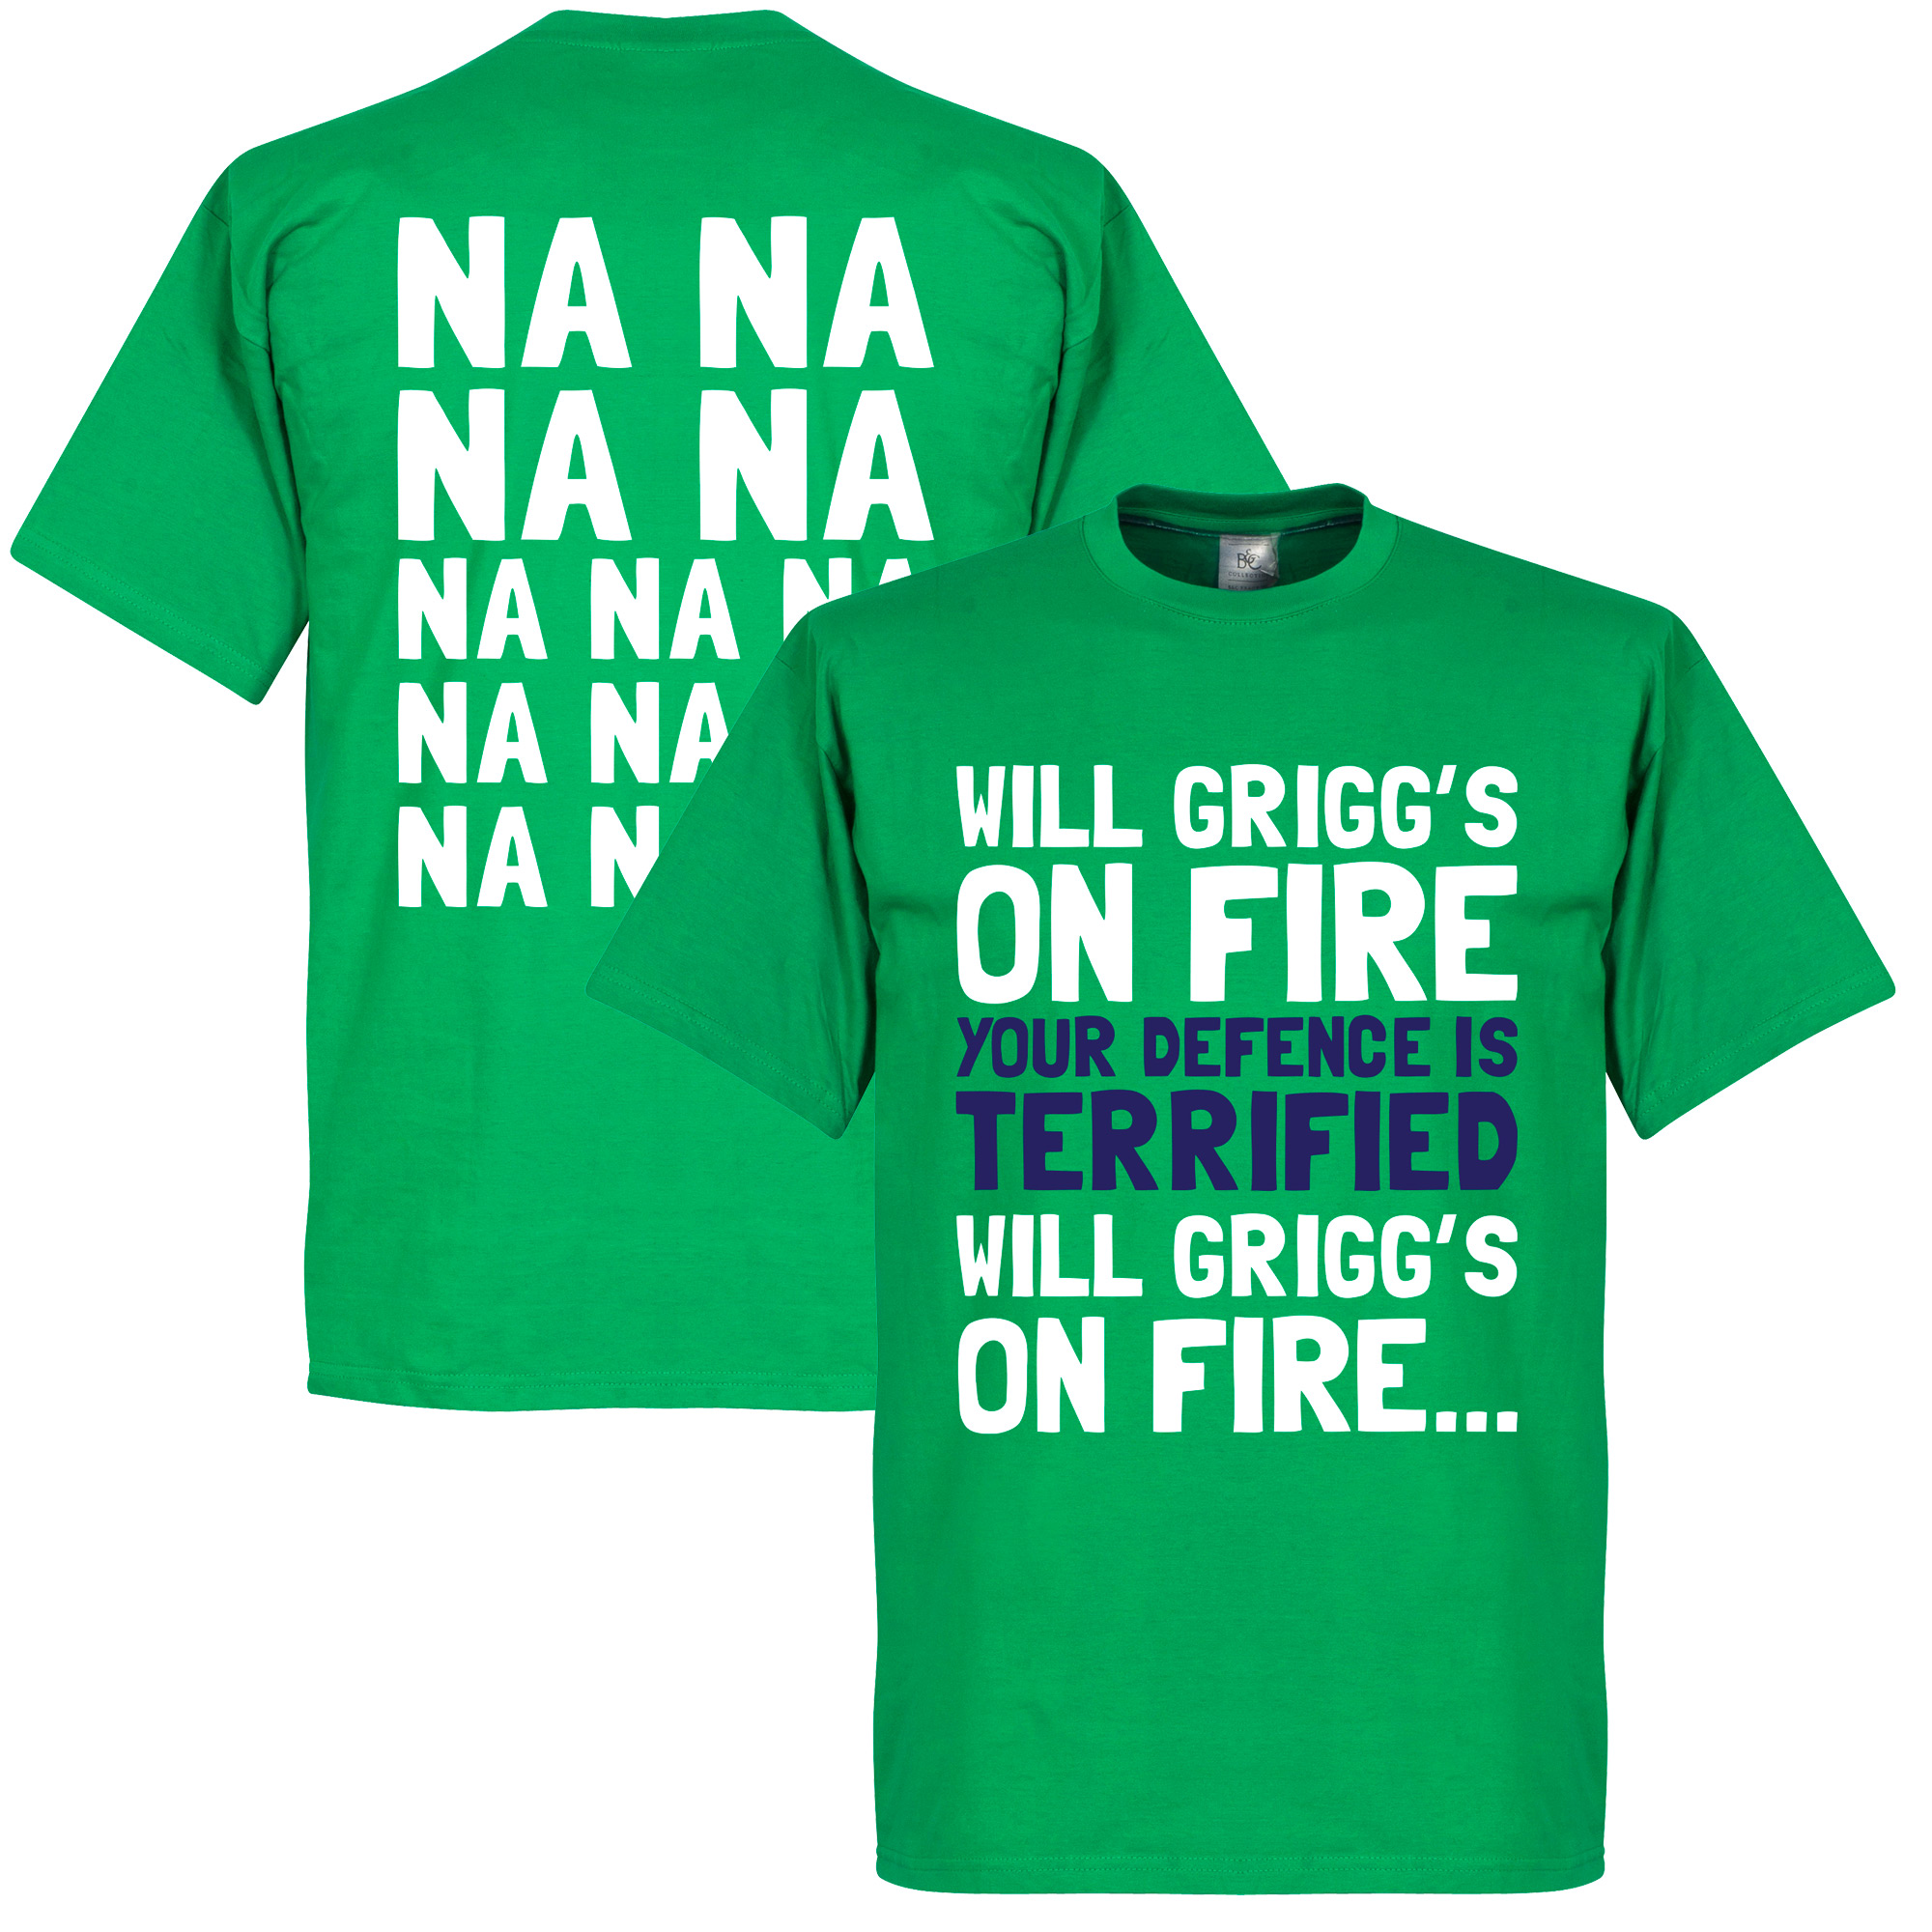 Will Grigg's on Fire Tee - Green - XS